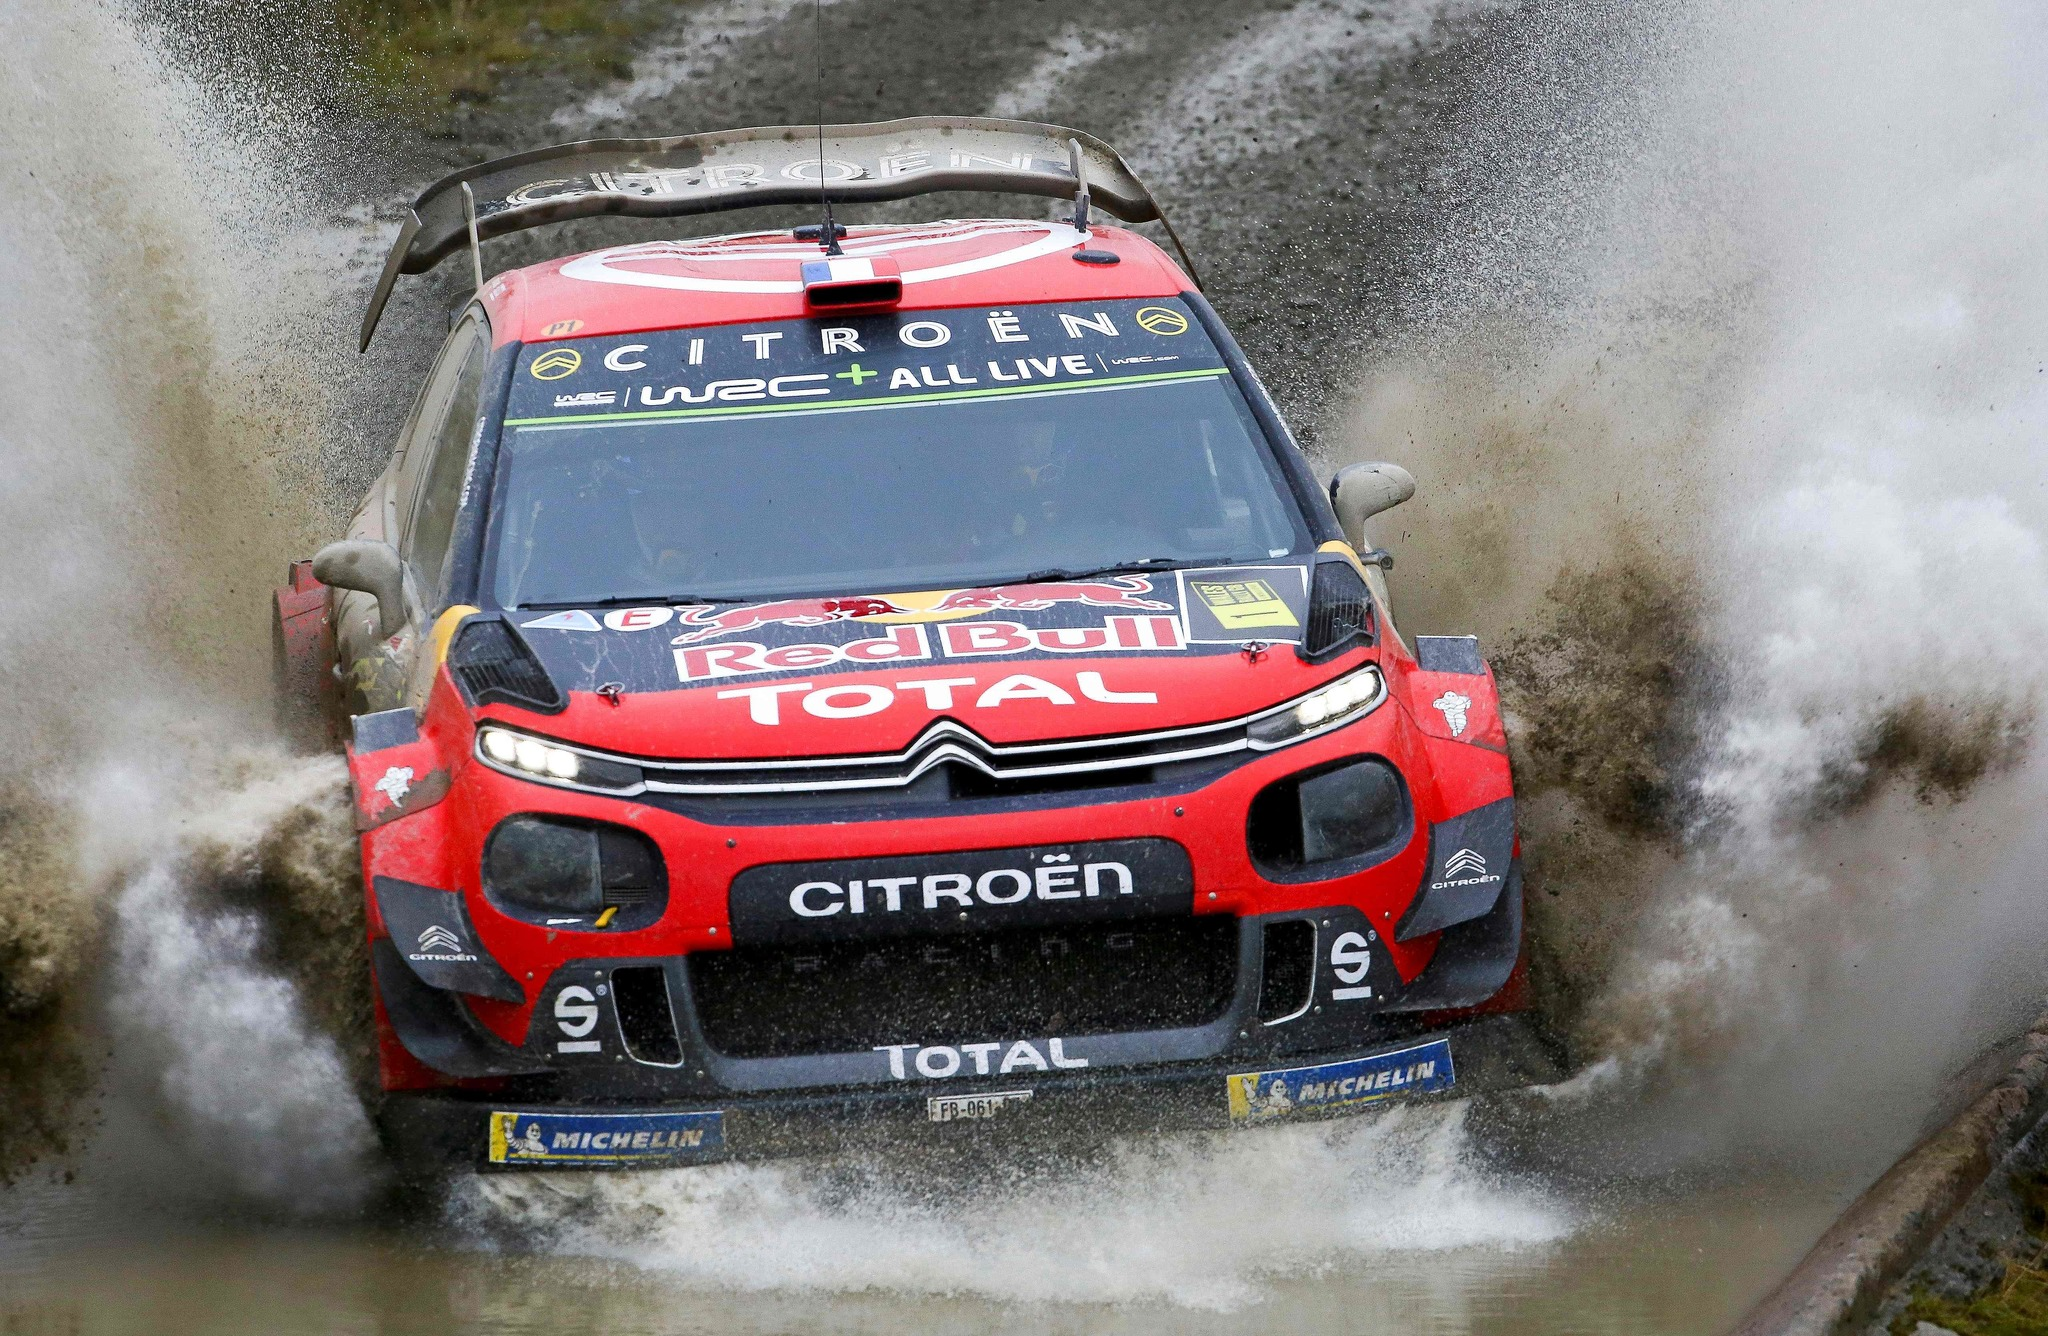 French pilot Sebastien <HIT>Ogier</HIT> and co-pilot Julien Ingrassia of the Citroen Total WRT drive their Citroen C3 WRC as they compete in the Sweet Lamb stage of the Wales Rally GB, the 12th round of the FIA World Rally Championship, in north west Wales on October 5, 2019. (Photo by GEOFF CADDICK / AFP)